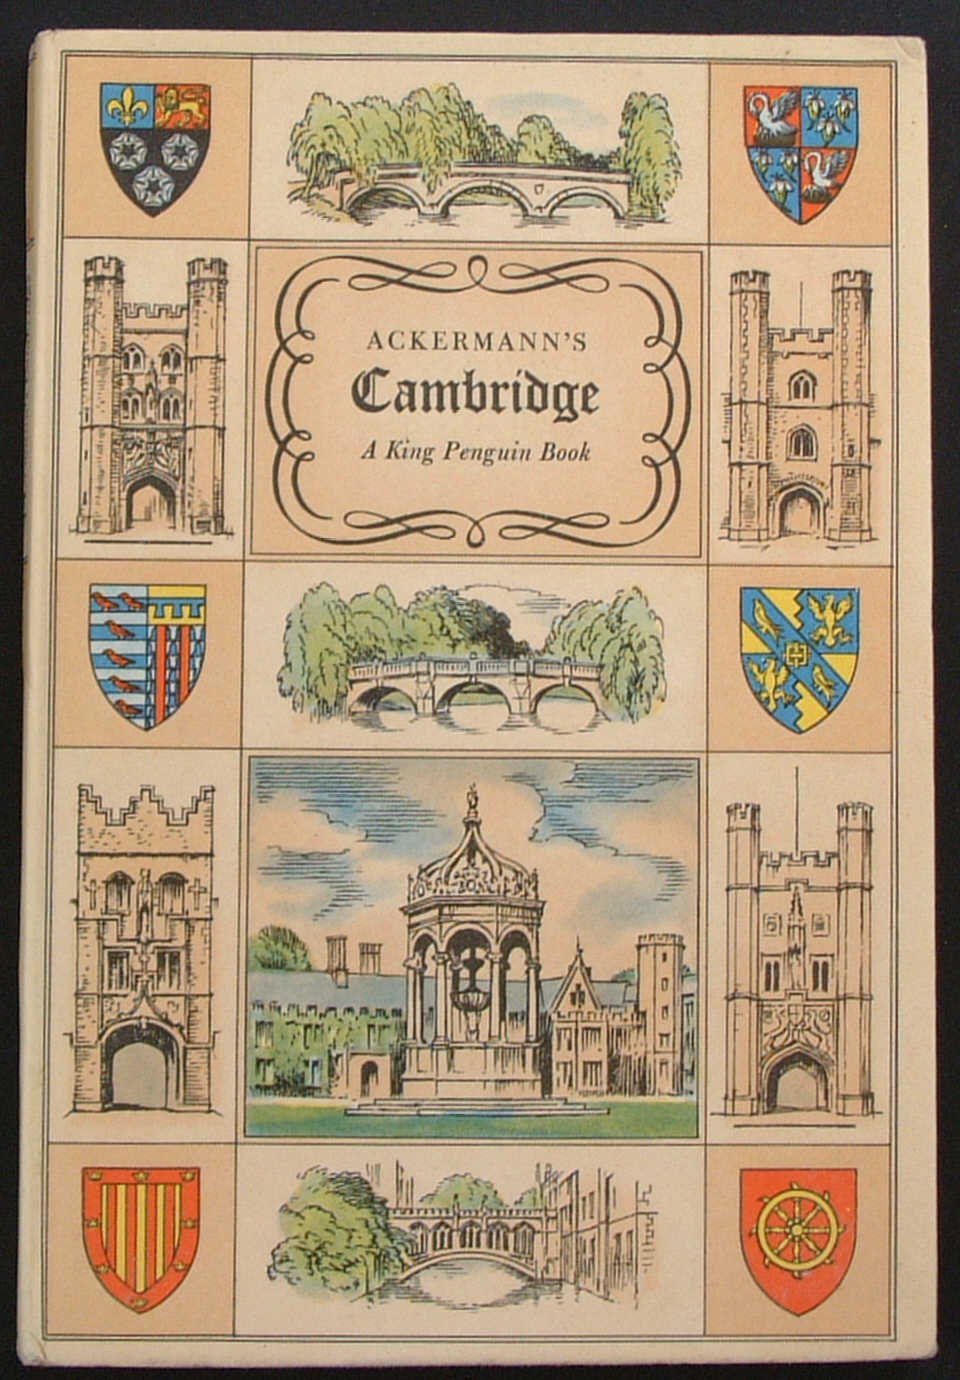 Penguin Book Cover History : Oh to be in england on pinterest yorkshire